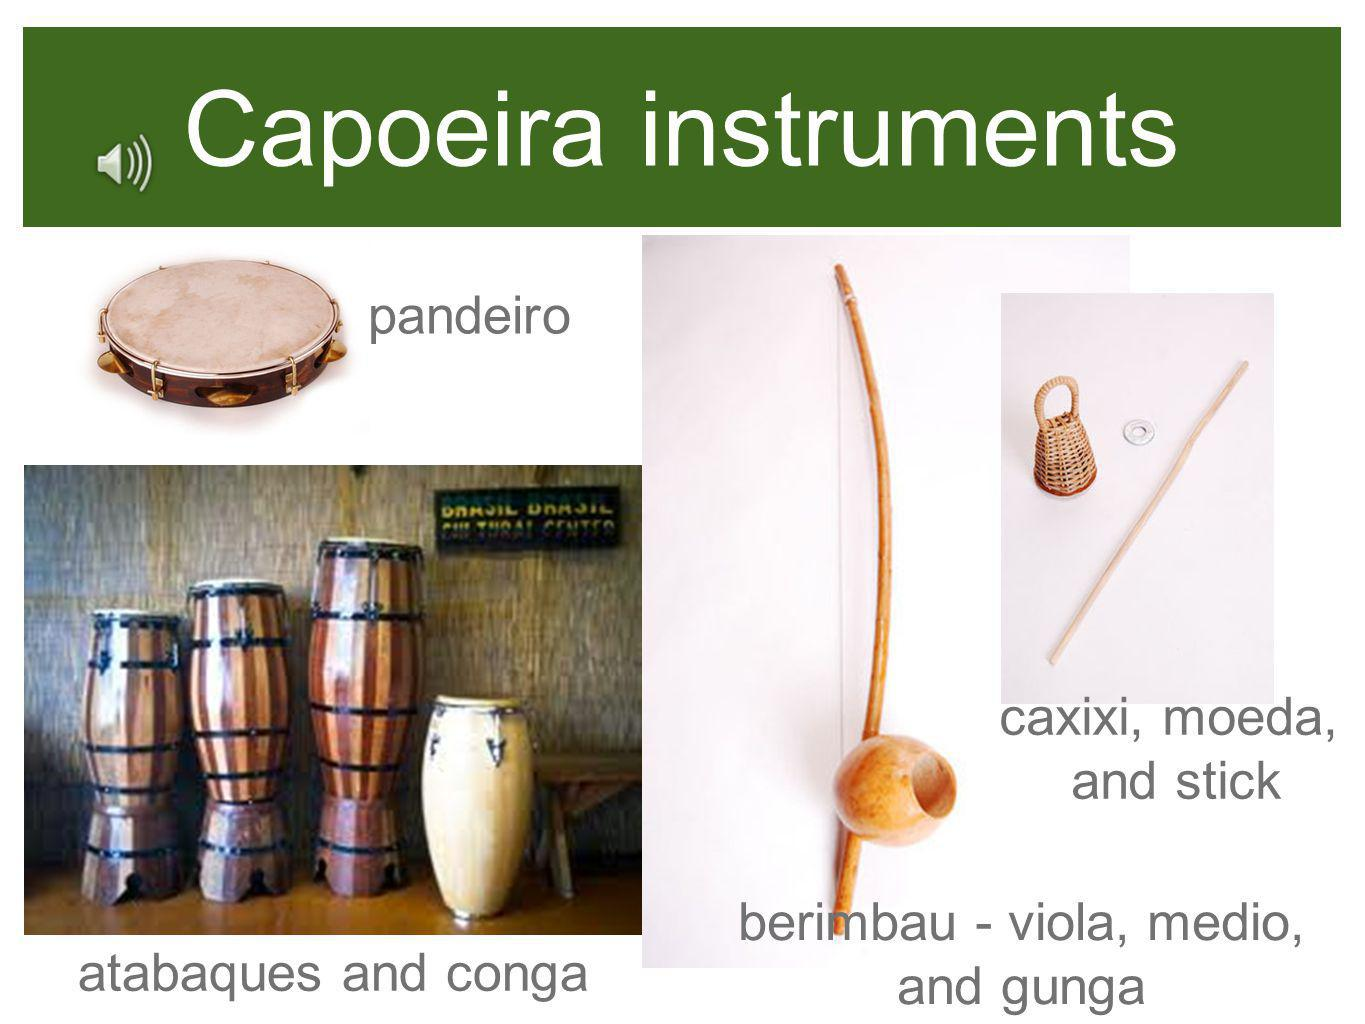 berimbau - viola, medio, and gunga